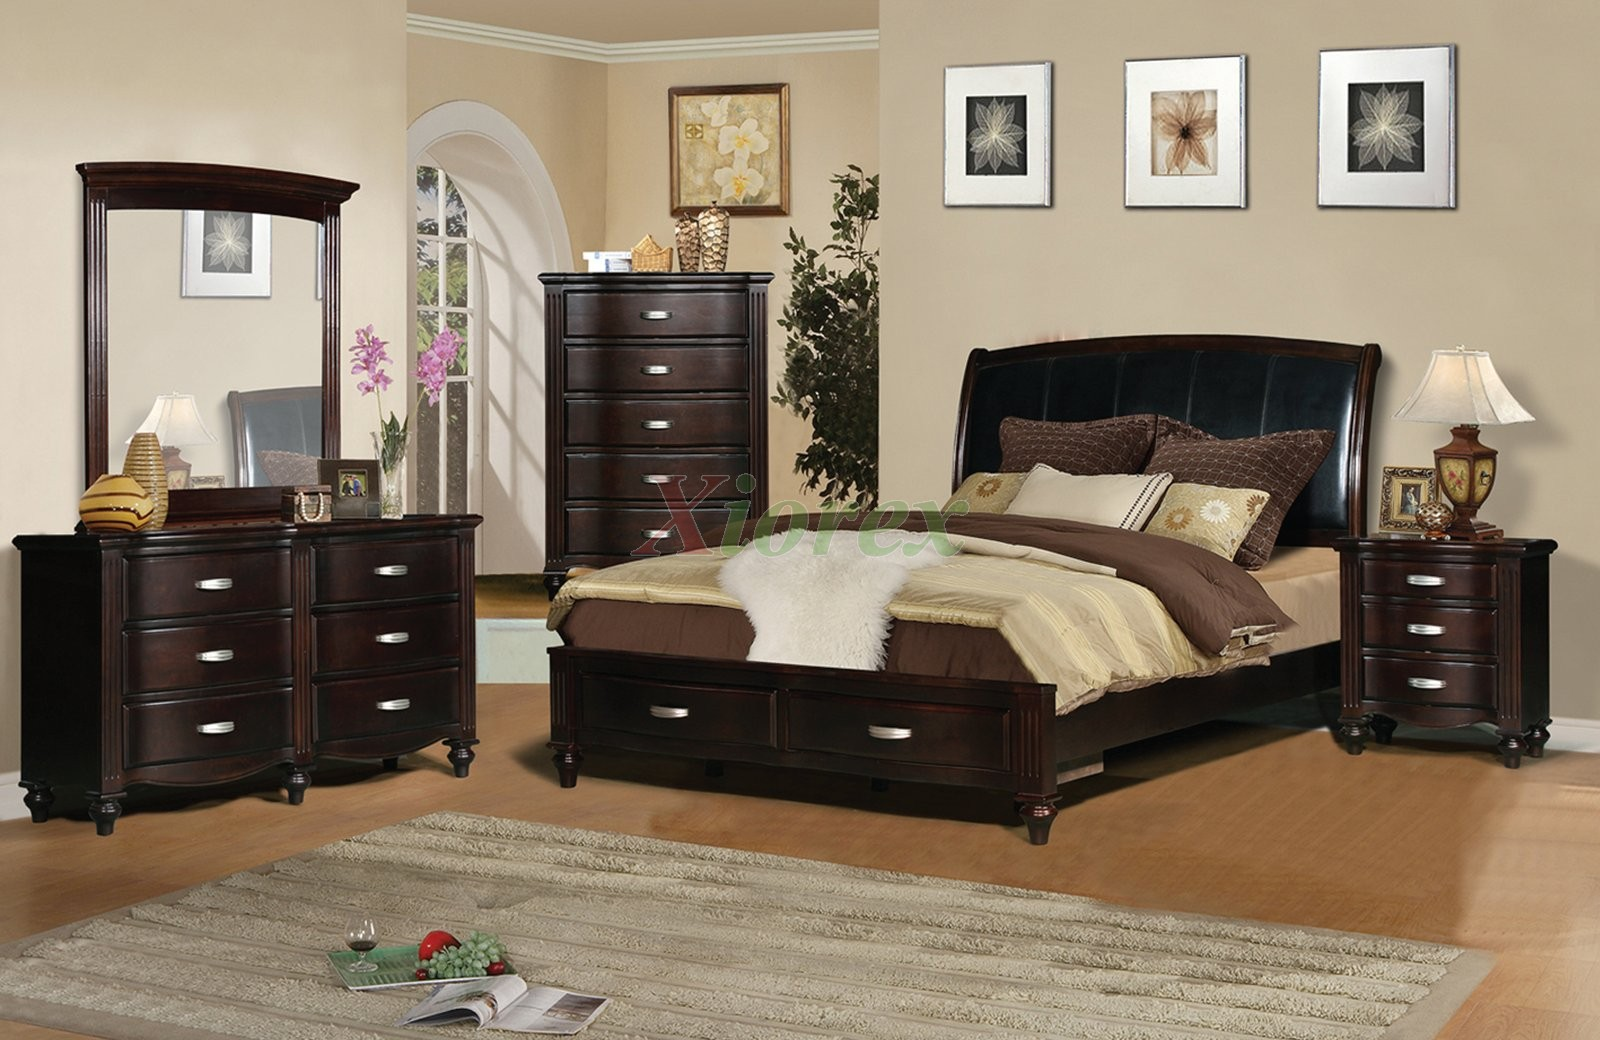 platform bedroom furniture set with leather headboard 132 xiorex. Black Bedroom Furniture Sets. Home Design Ideas